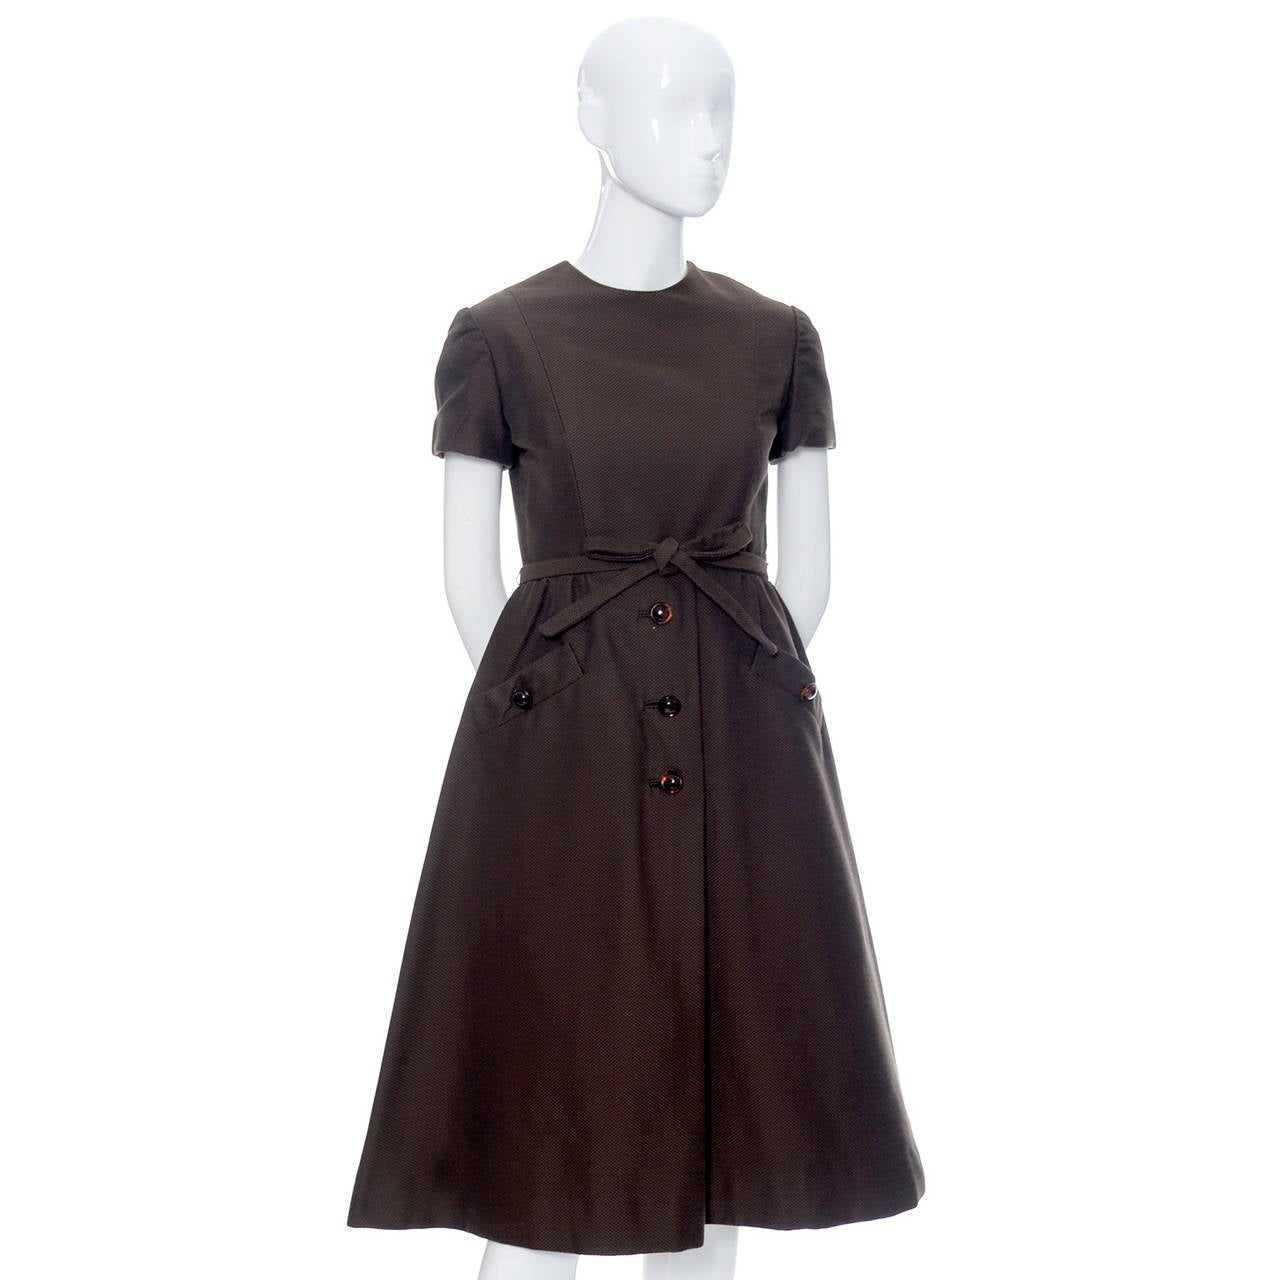 Chocolate Brown Geoffrey Beene 1960s Mod Vintage Dress Pockets Belt In Good Condition For Sale In Portland, OR